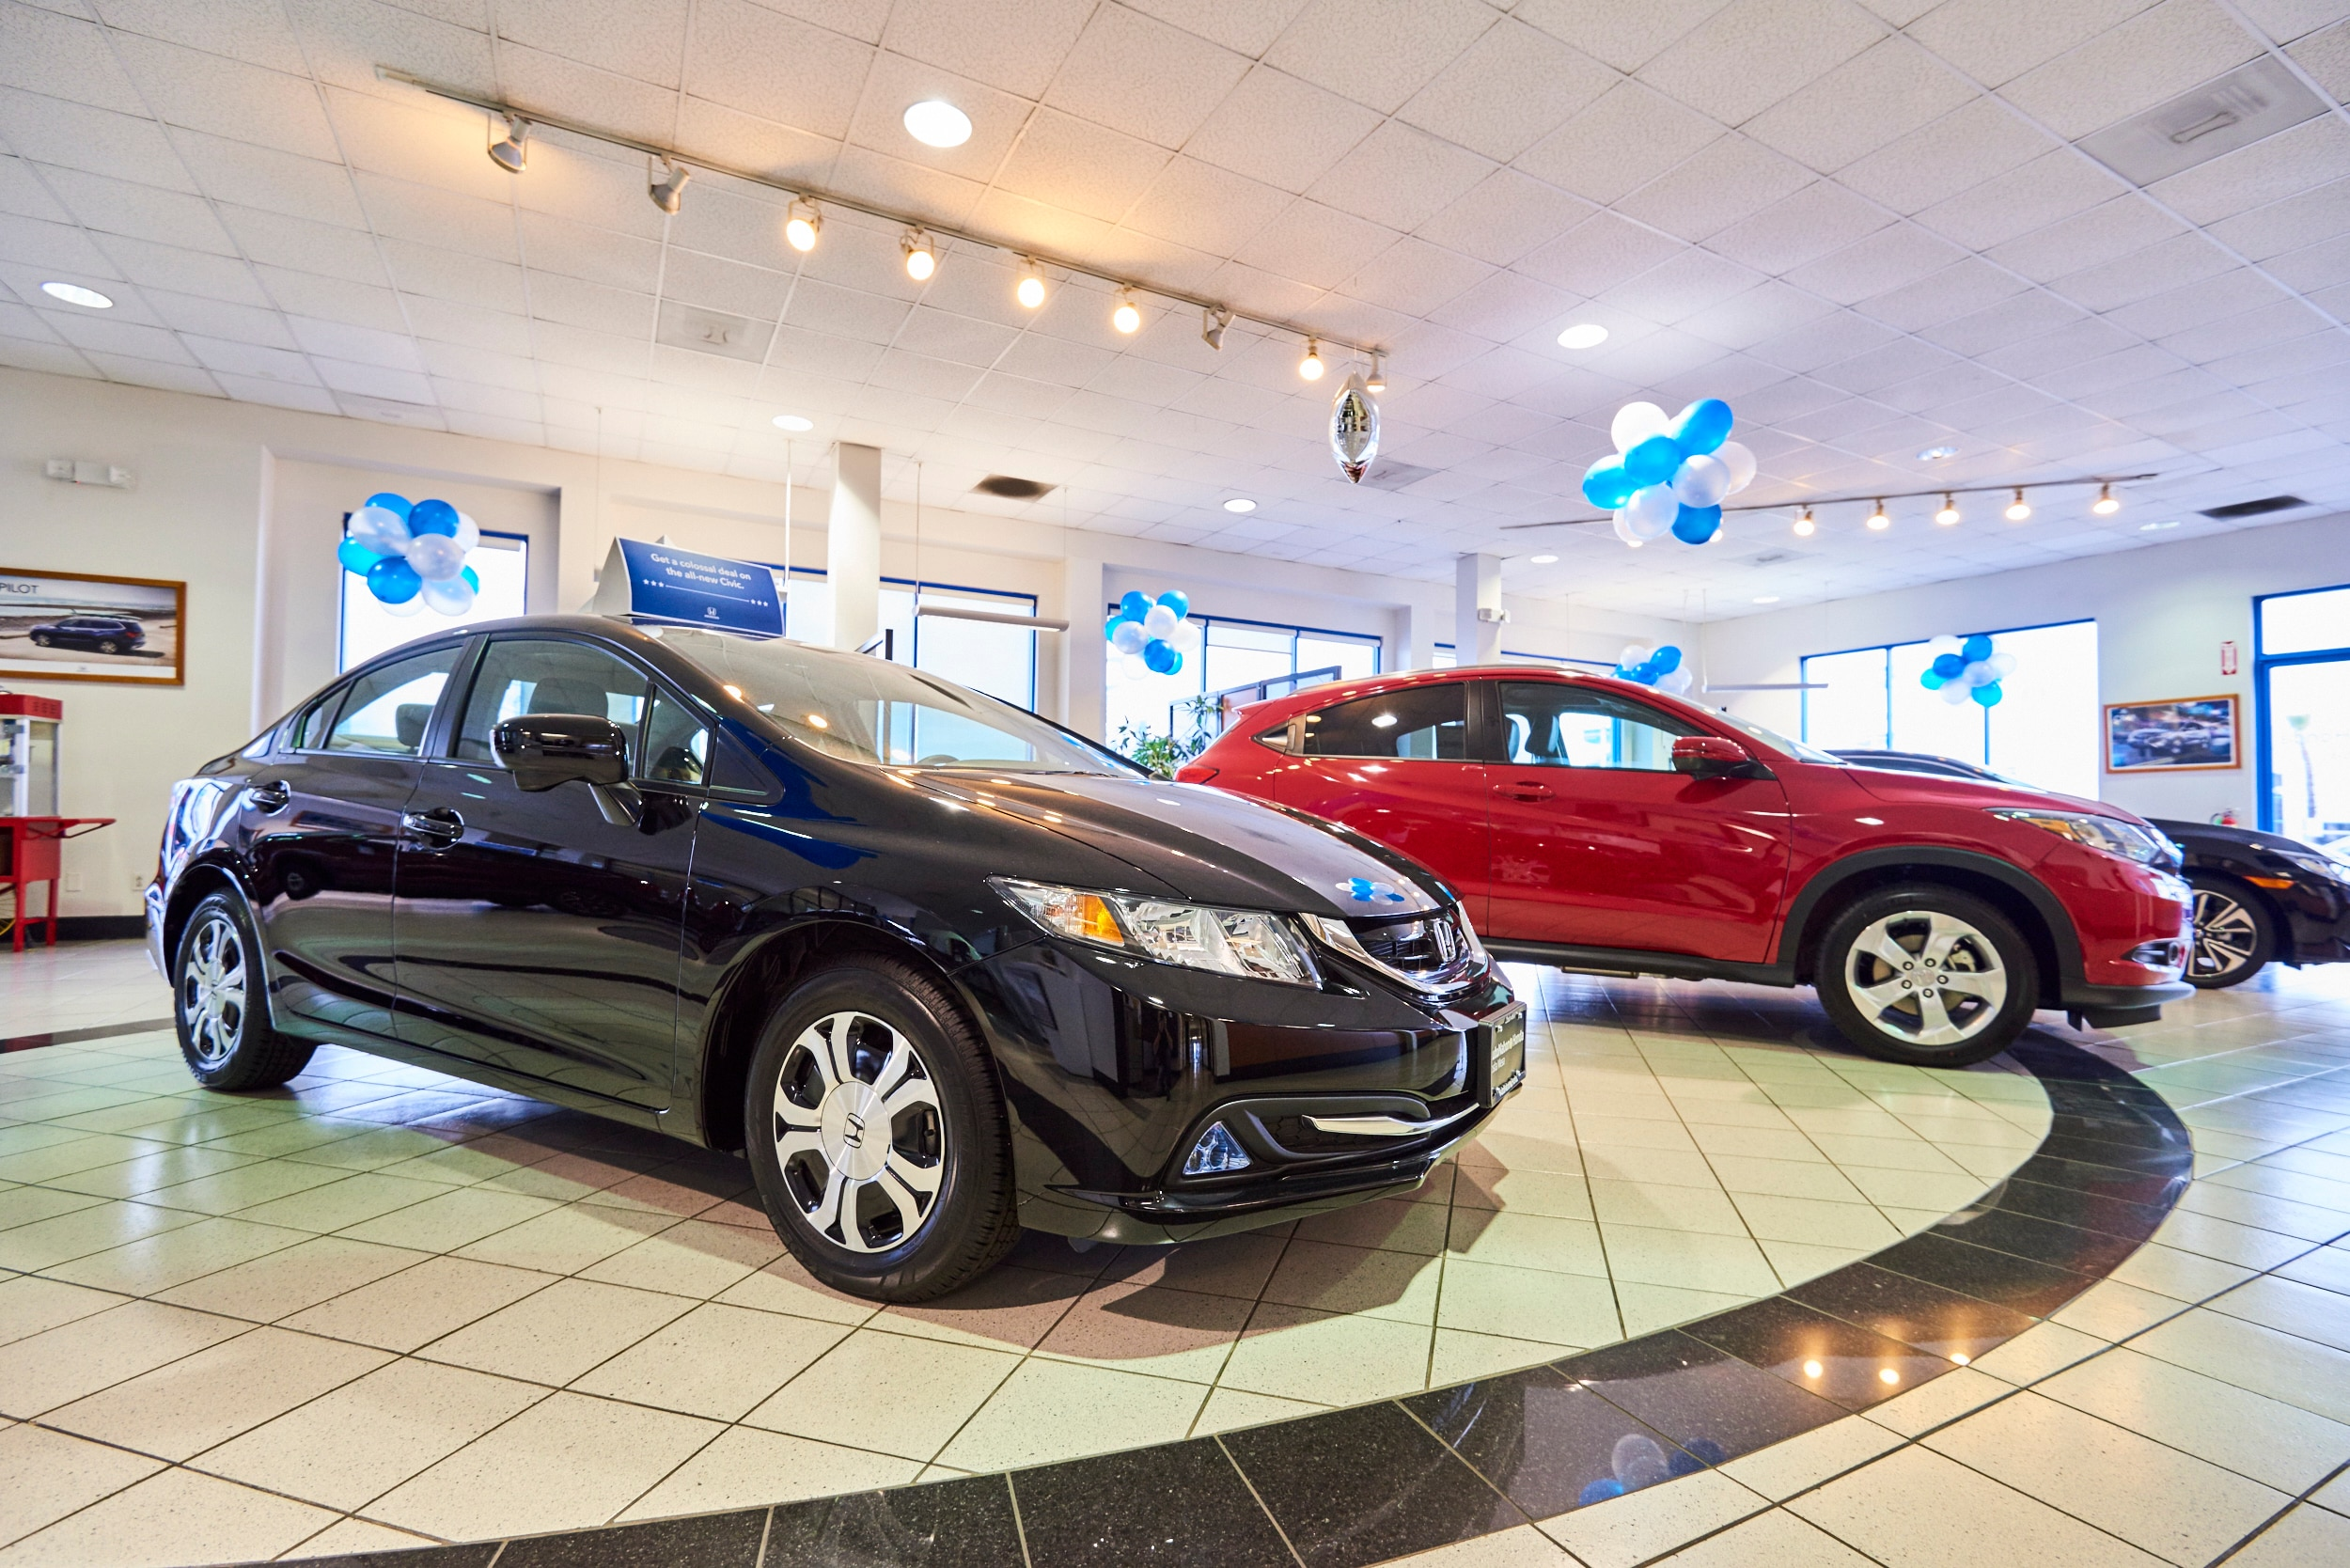 About AutoNation Honda Costa Mesa